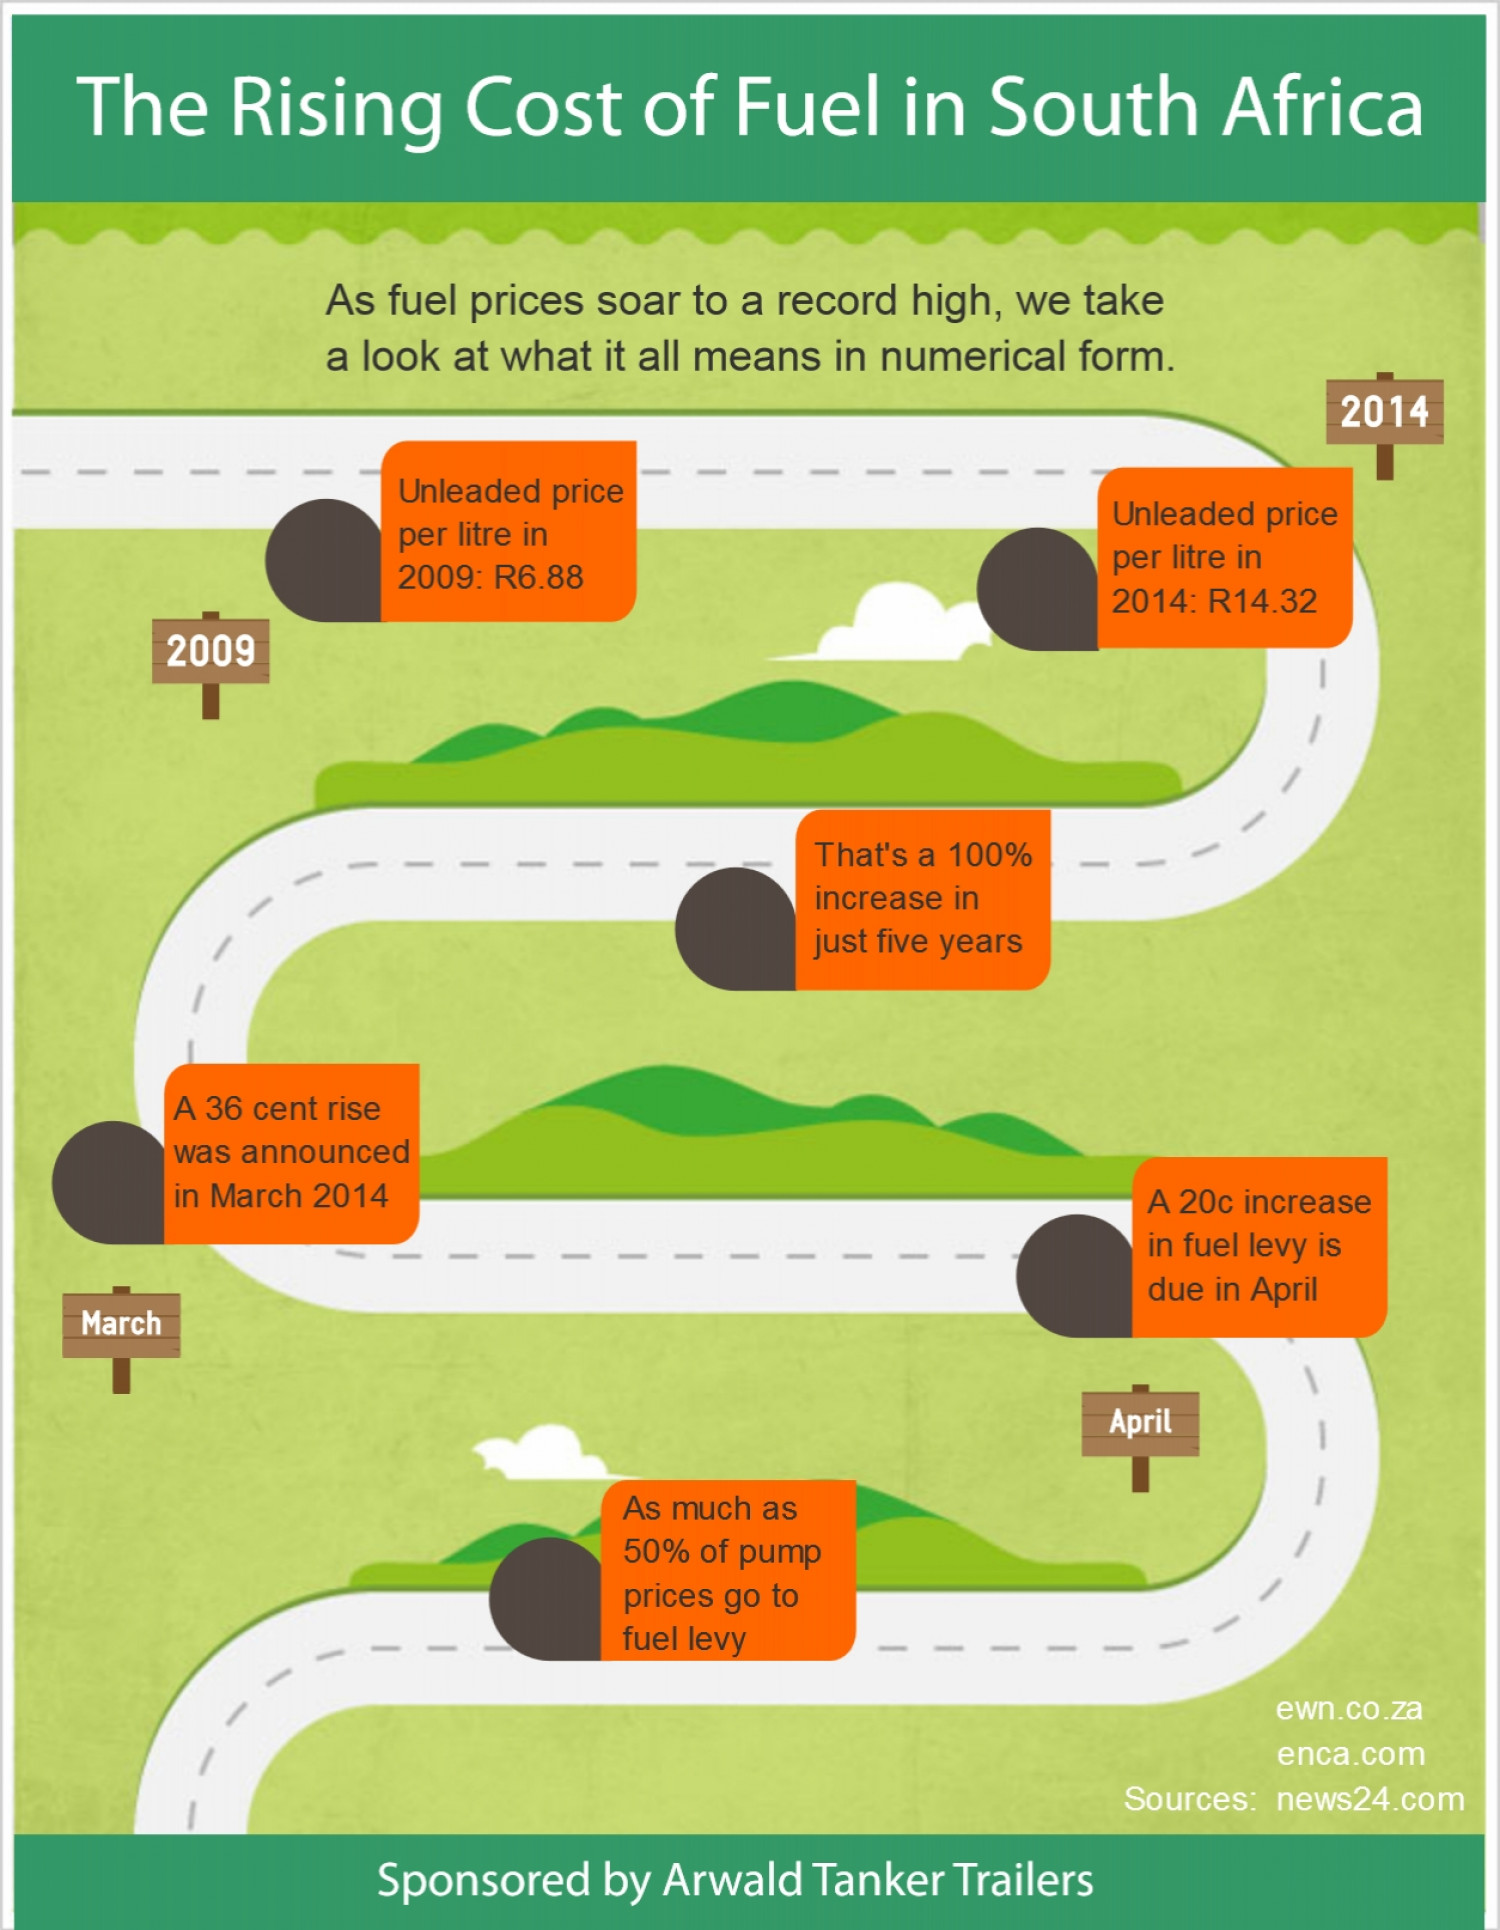 The Rising Cost of Fuel in South Africa Infographic